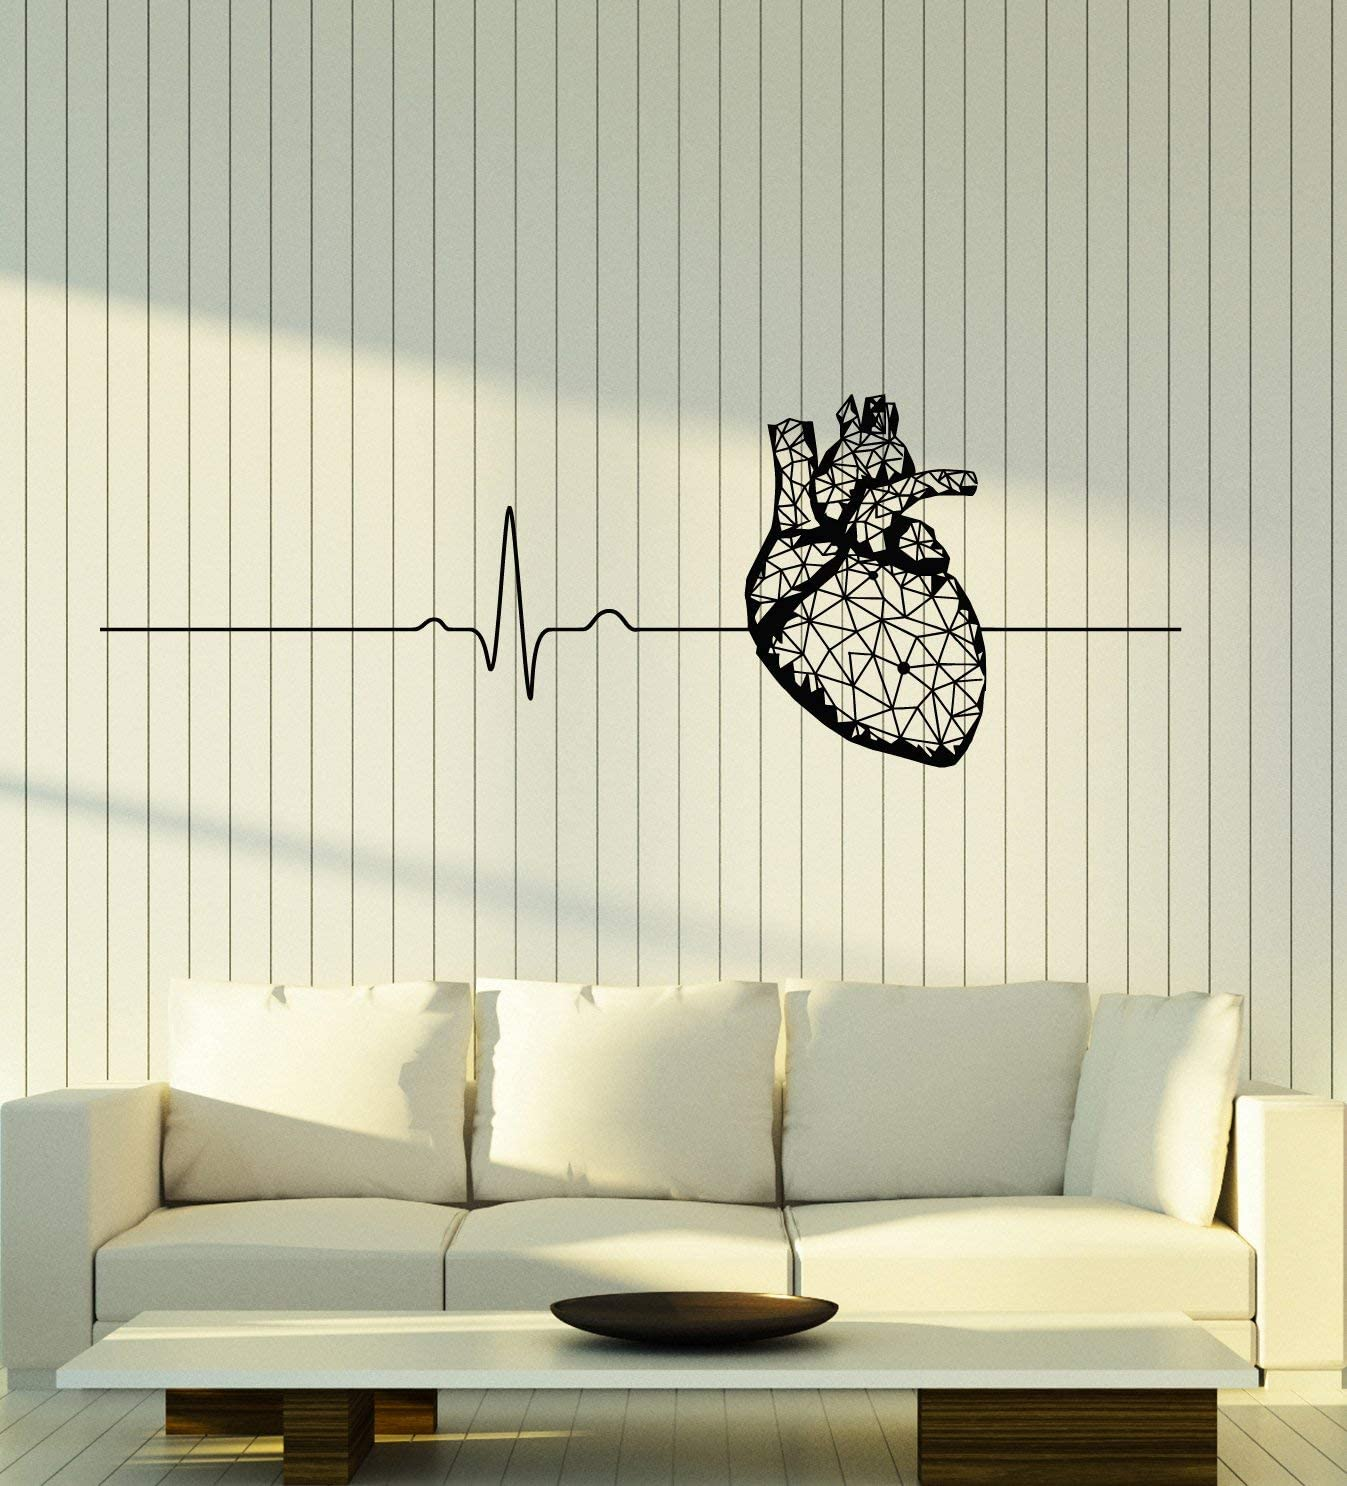 WallStickers4ever Vinyl Wall Decal Polygonal Heart Anatomy Health Medical Office Cardiogram Stickers Mural Large Decor (g1945) Black